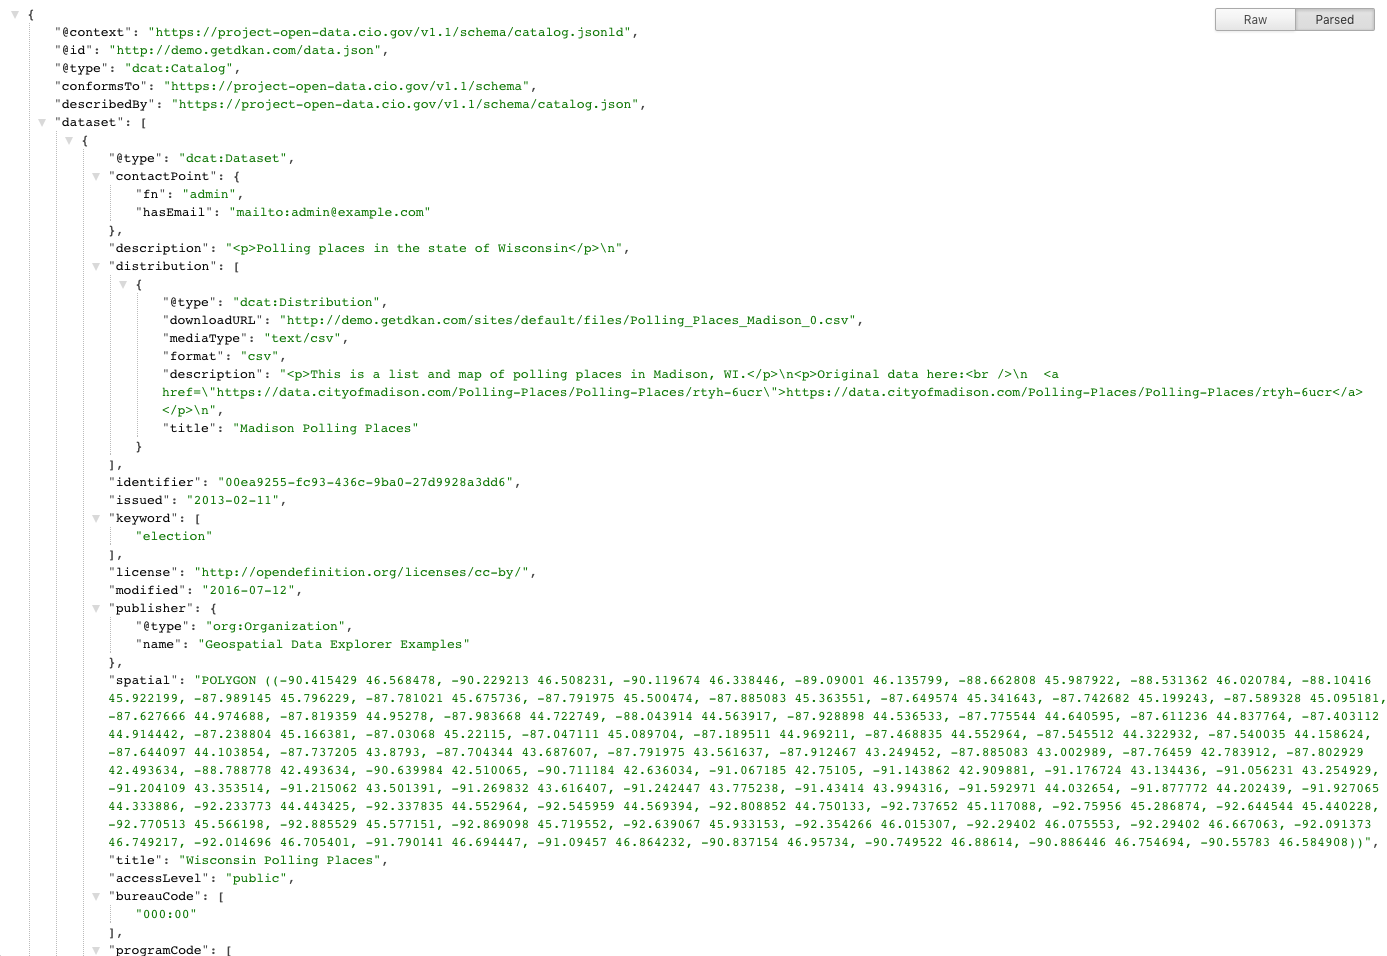 formatted data.json